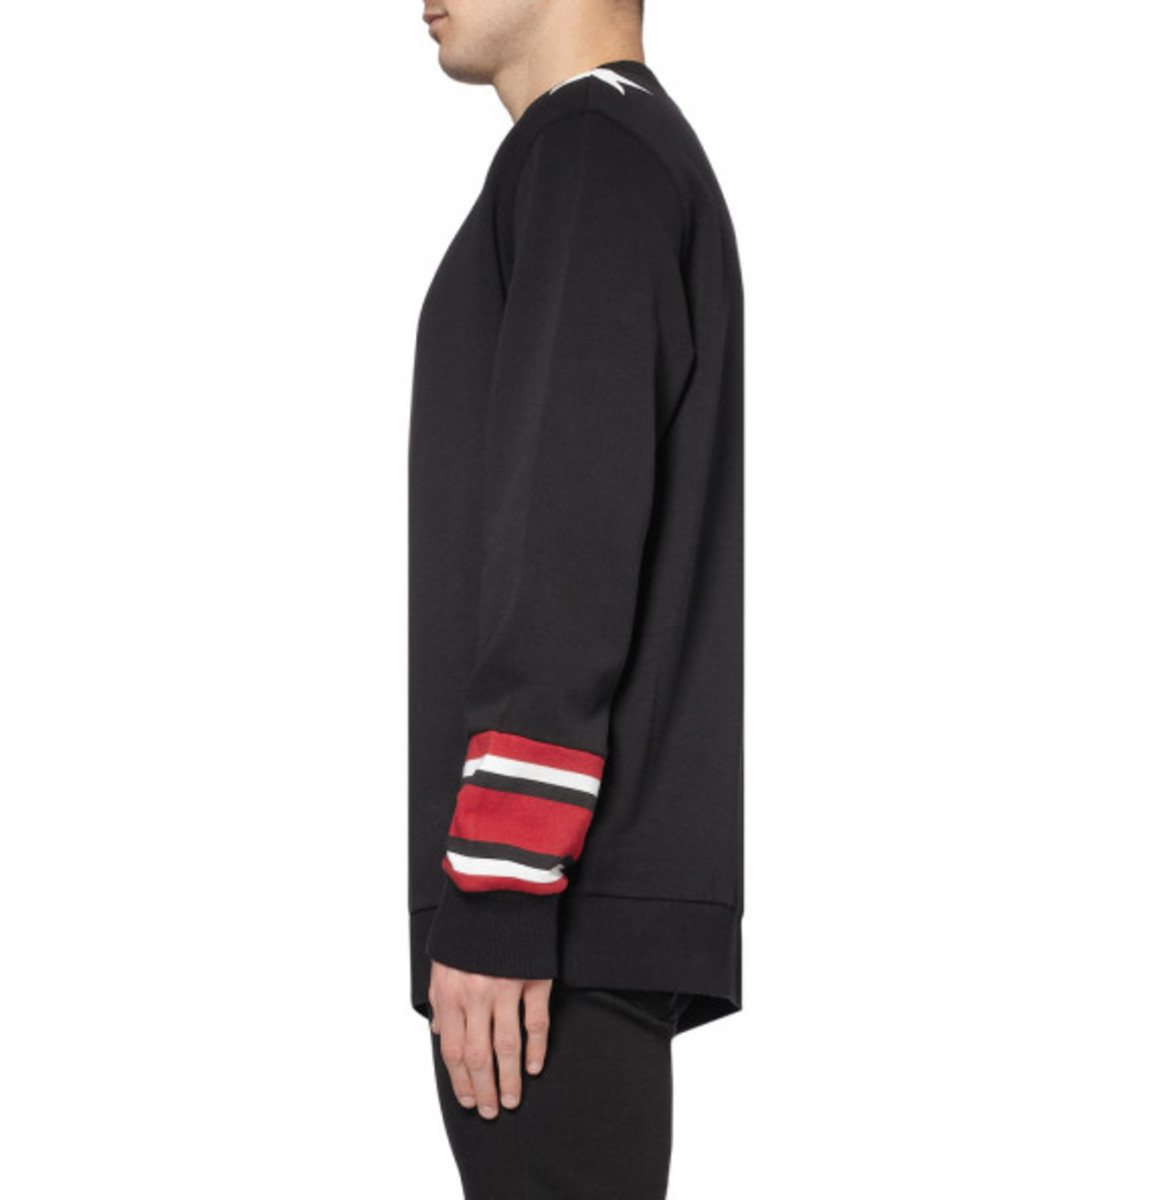 givenchy-star-printed-striped-cotton-sweatshirt-06